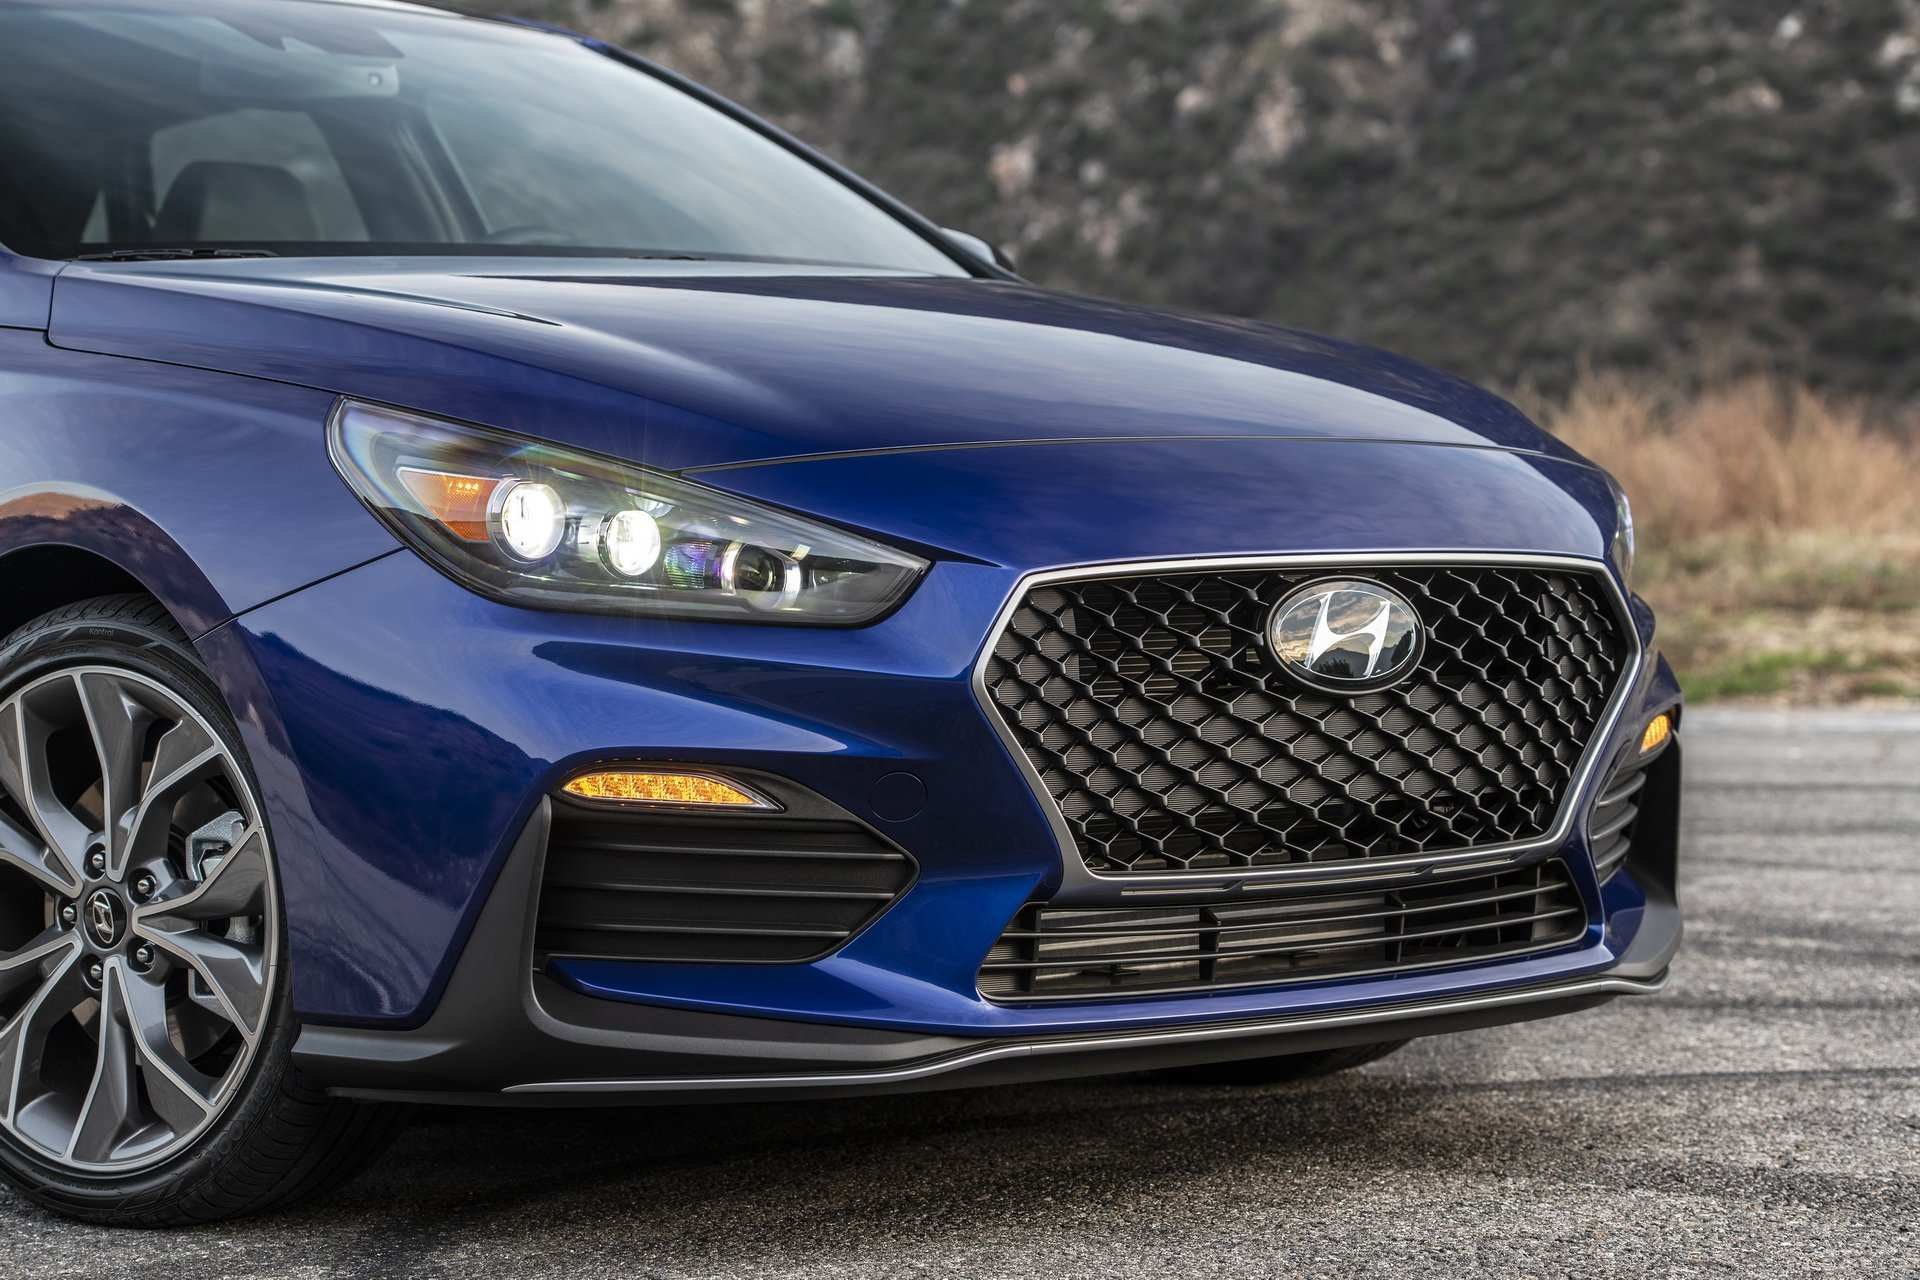 42 All New 2020 Hyundai Elantra Gt Prices